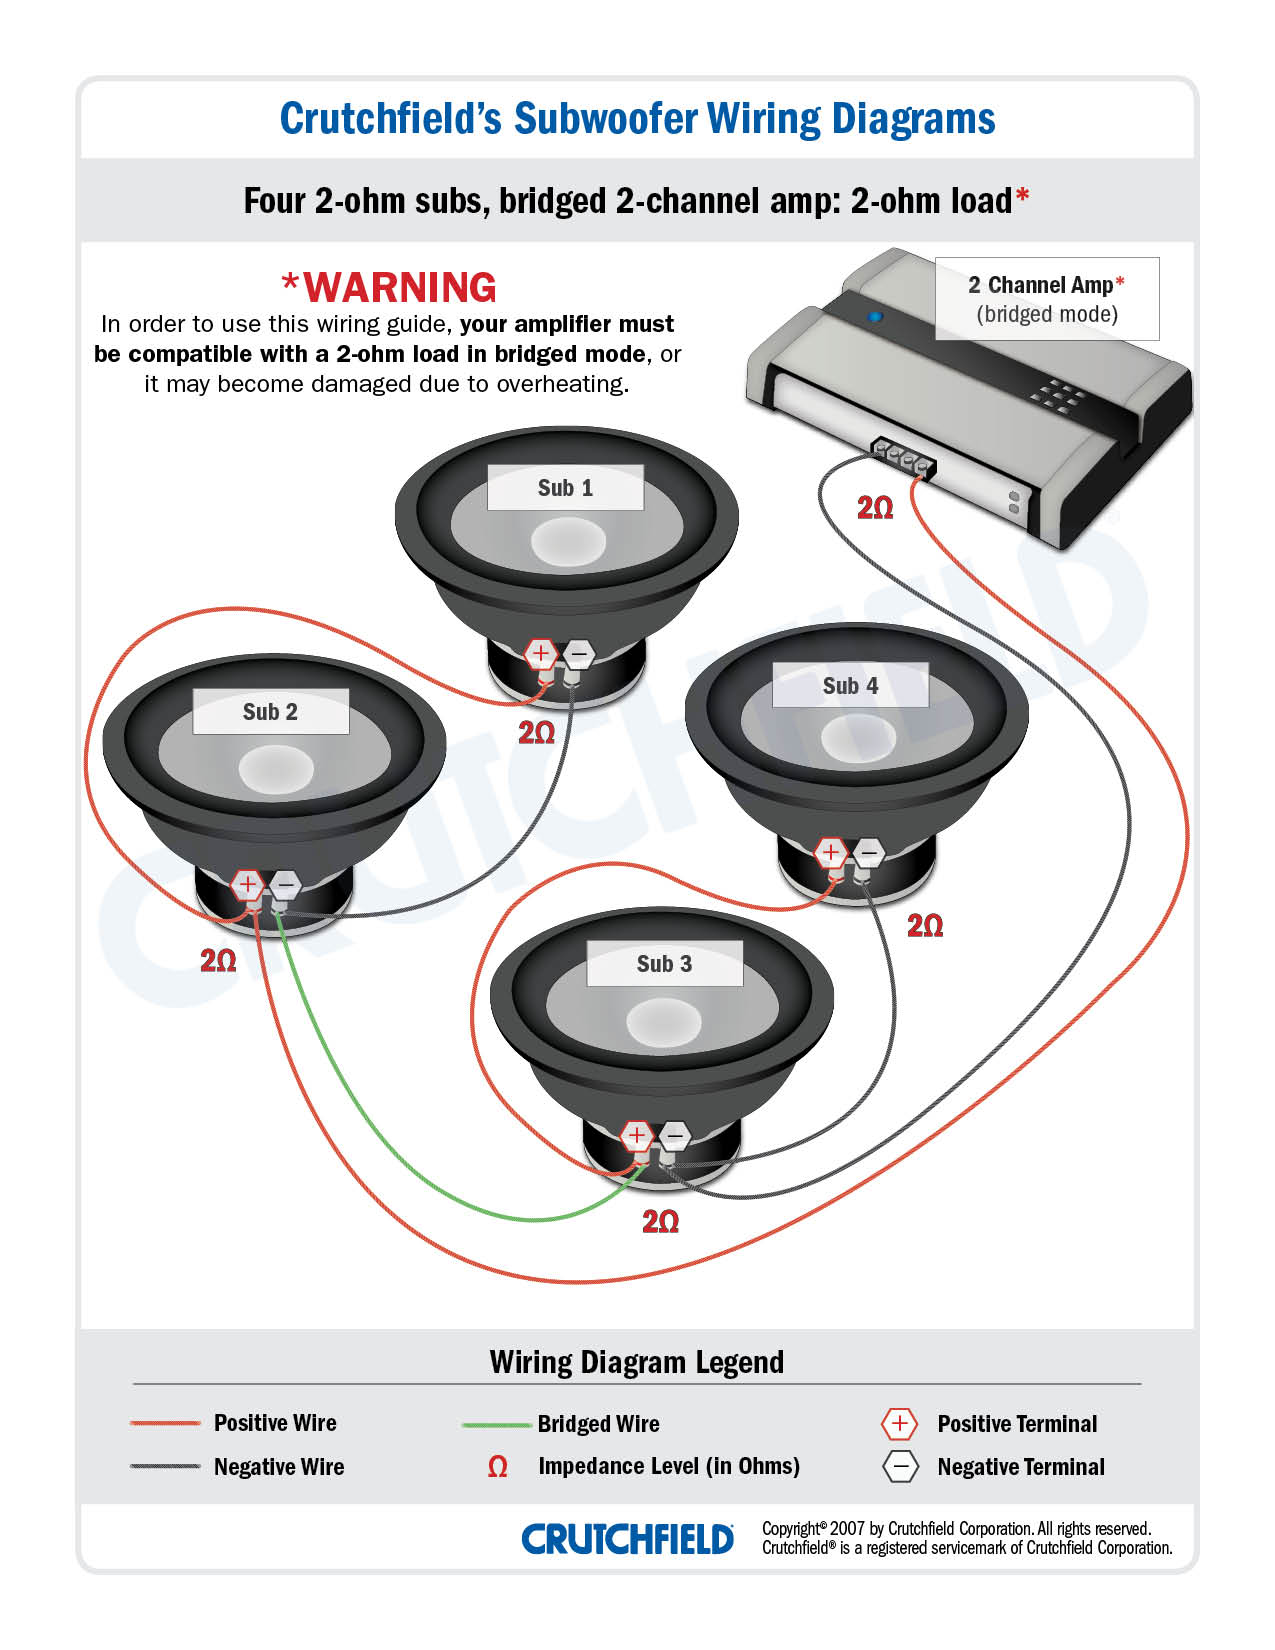 Subwoofer Wiring Diagram from images.crutchfieldonline.com